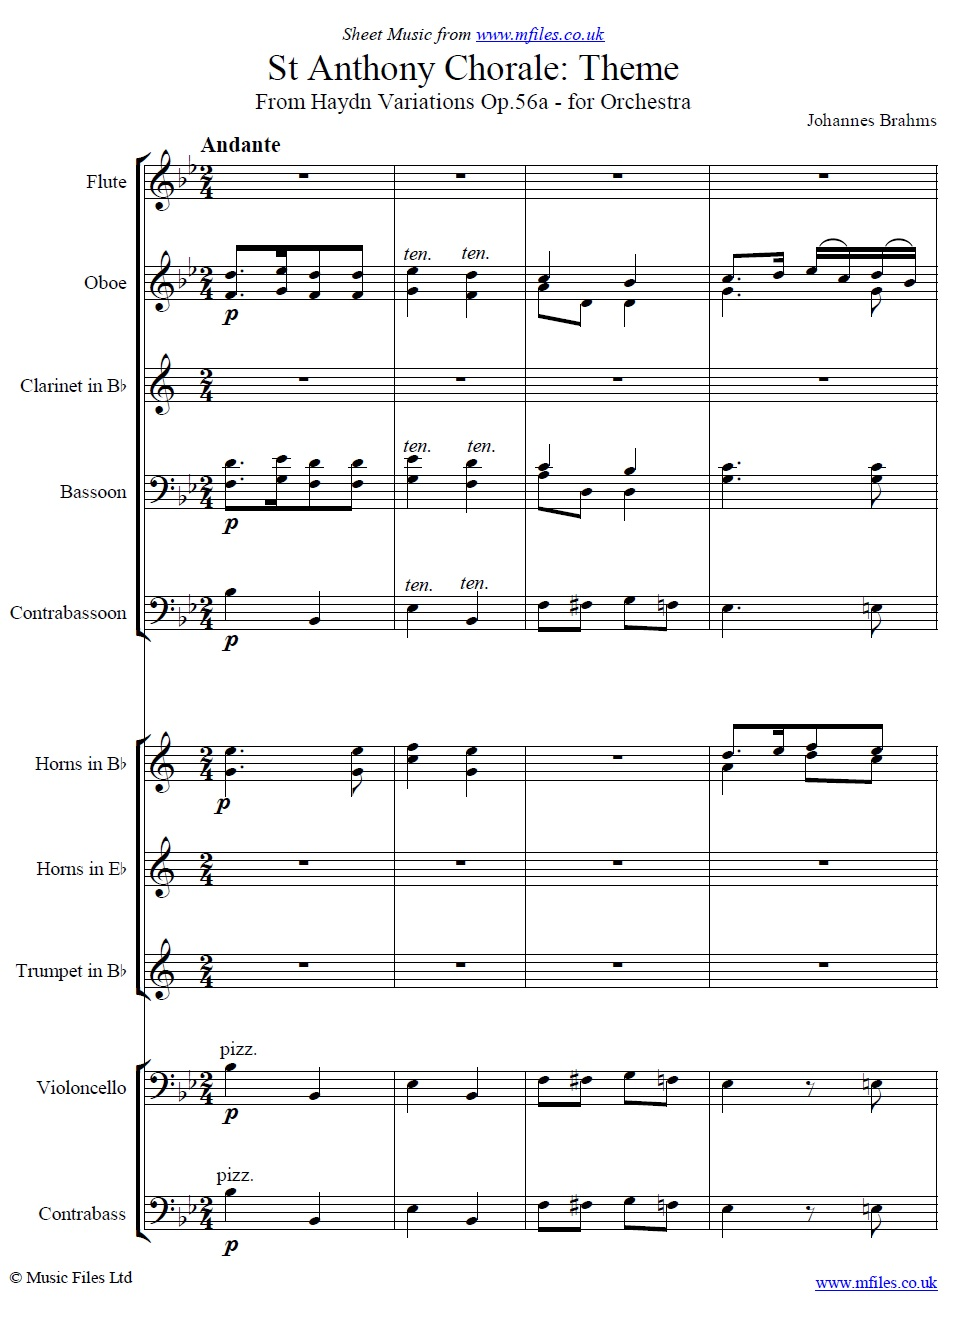 Brahms' St. Anthony Chorale Variations (Theme) for Orchestra - sheet music 1st page